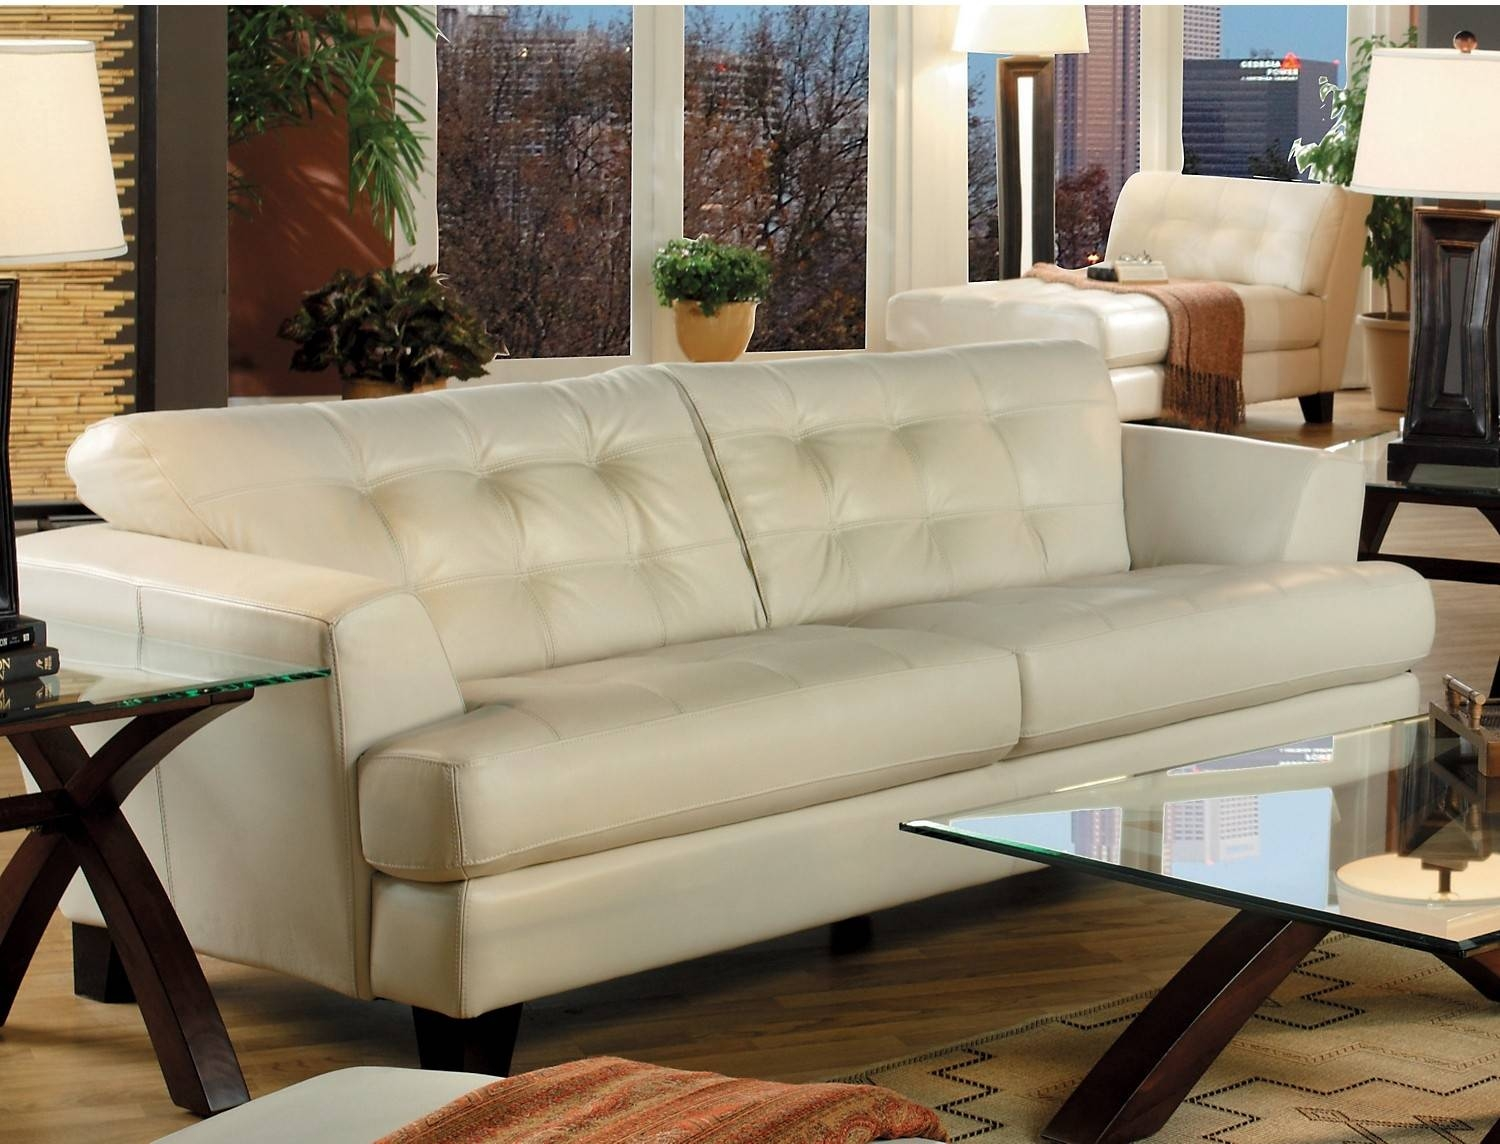 Furniture: Cindy Crawford Sectional Sofa For Elegant Living Room for Cindy Crawford Metropolis Sofas (Image 8 of 15)